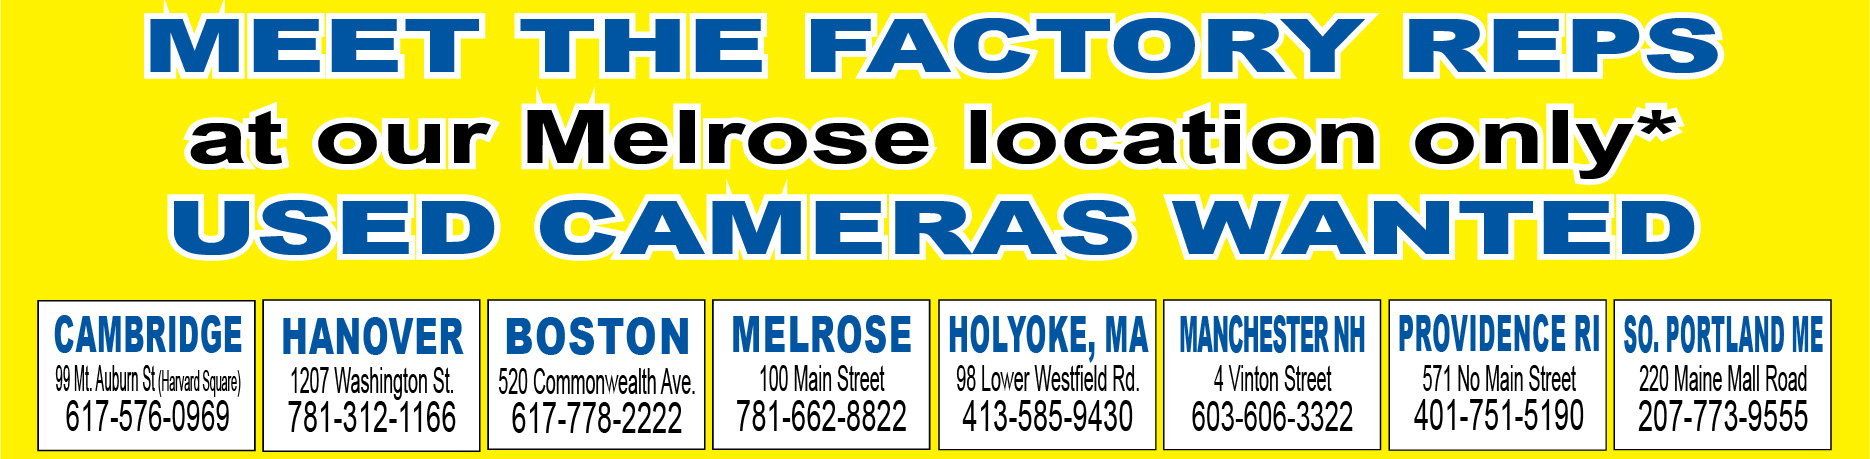 Meet Factory Reps on Friday and Saturday and Sunday in Melrose, MA